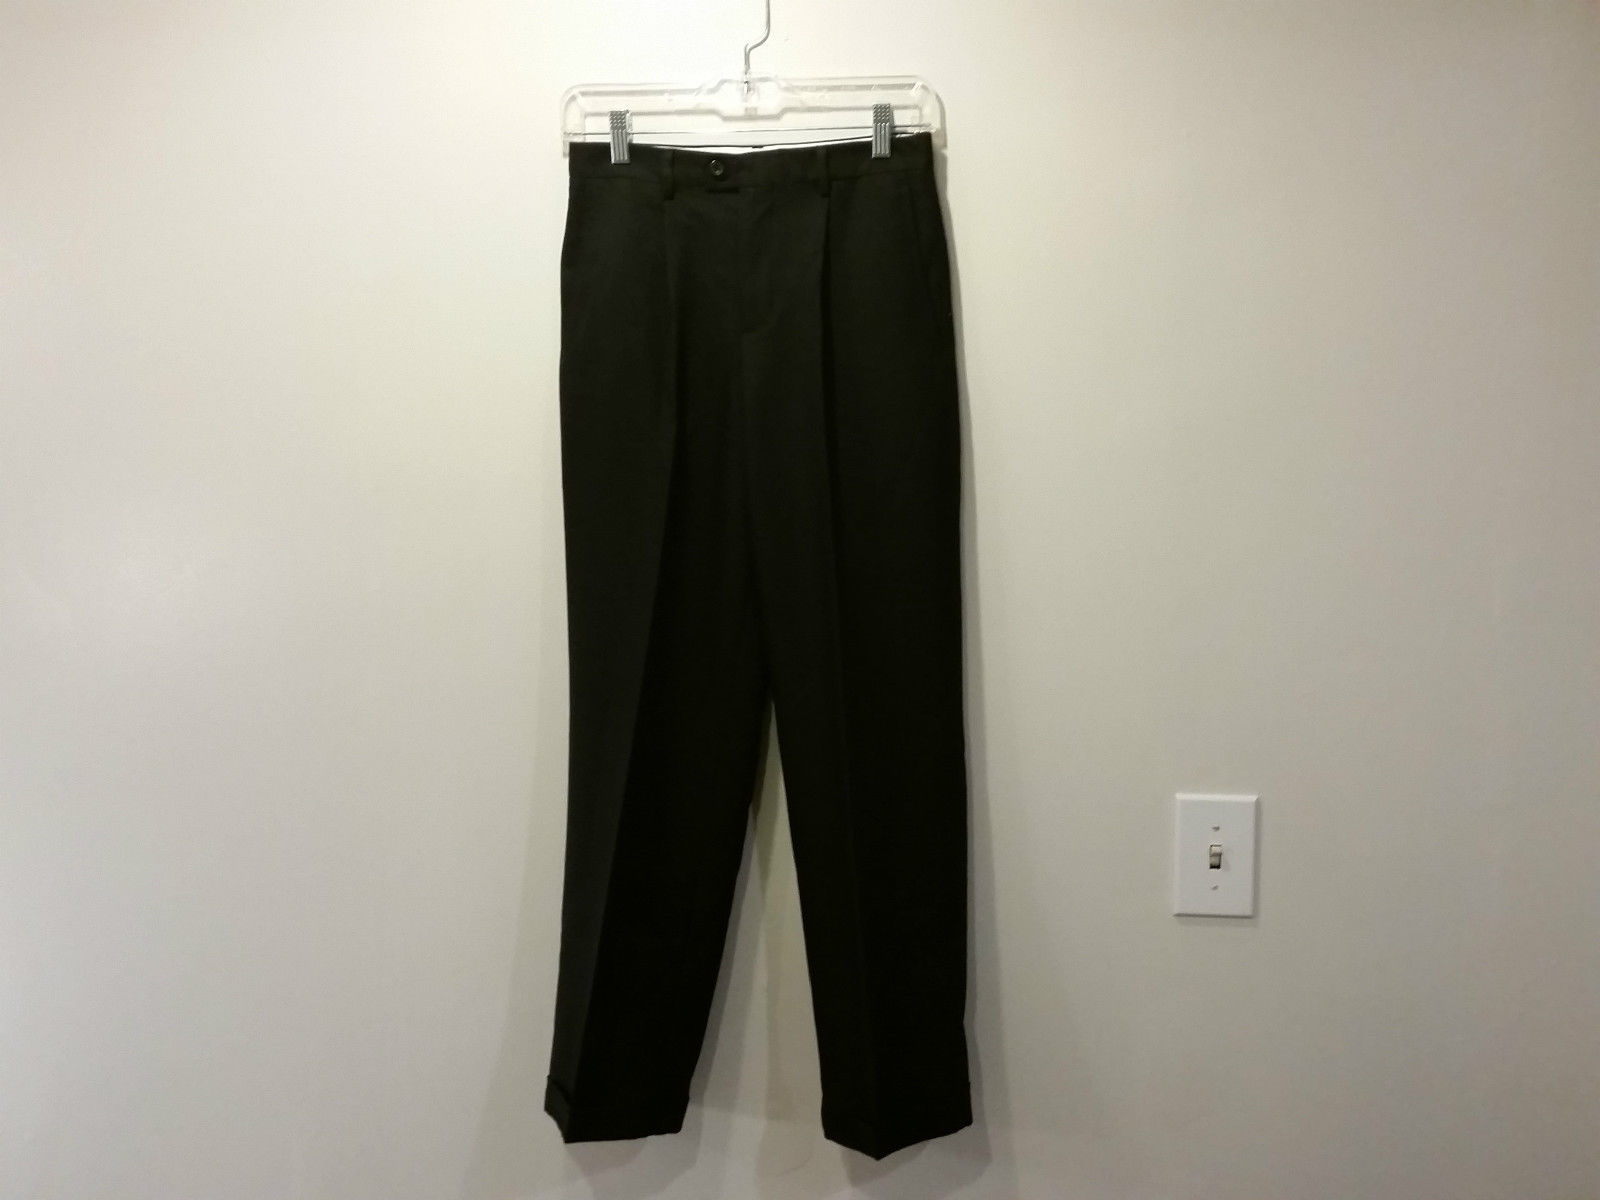 Nautica Black Pleated Front Dress Pants Side Pockets Back Pockets Size 14 Reg